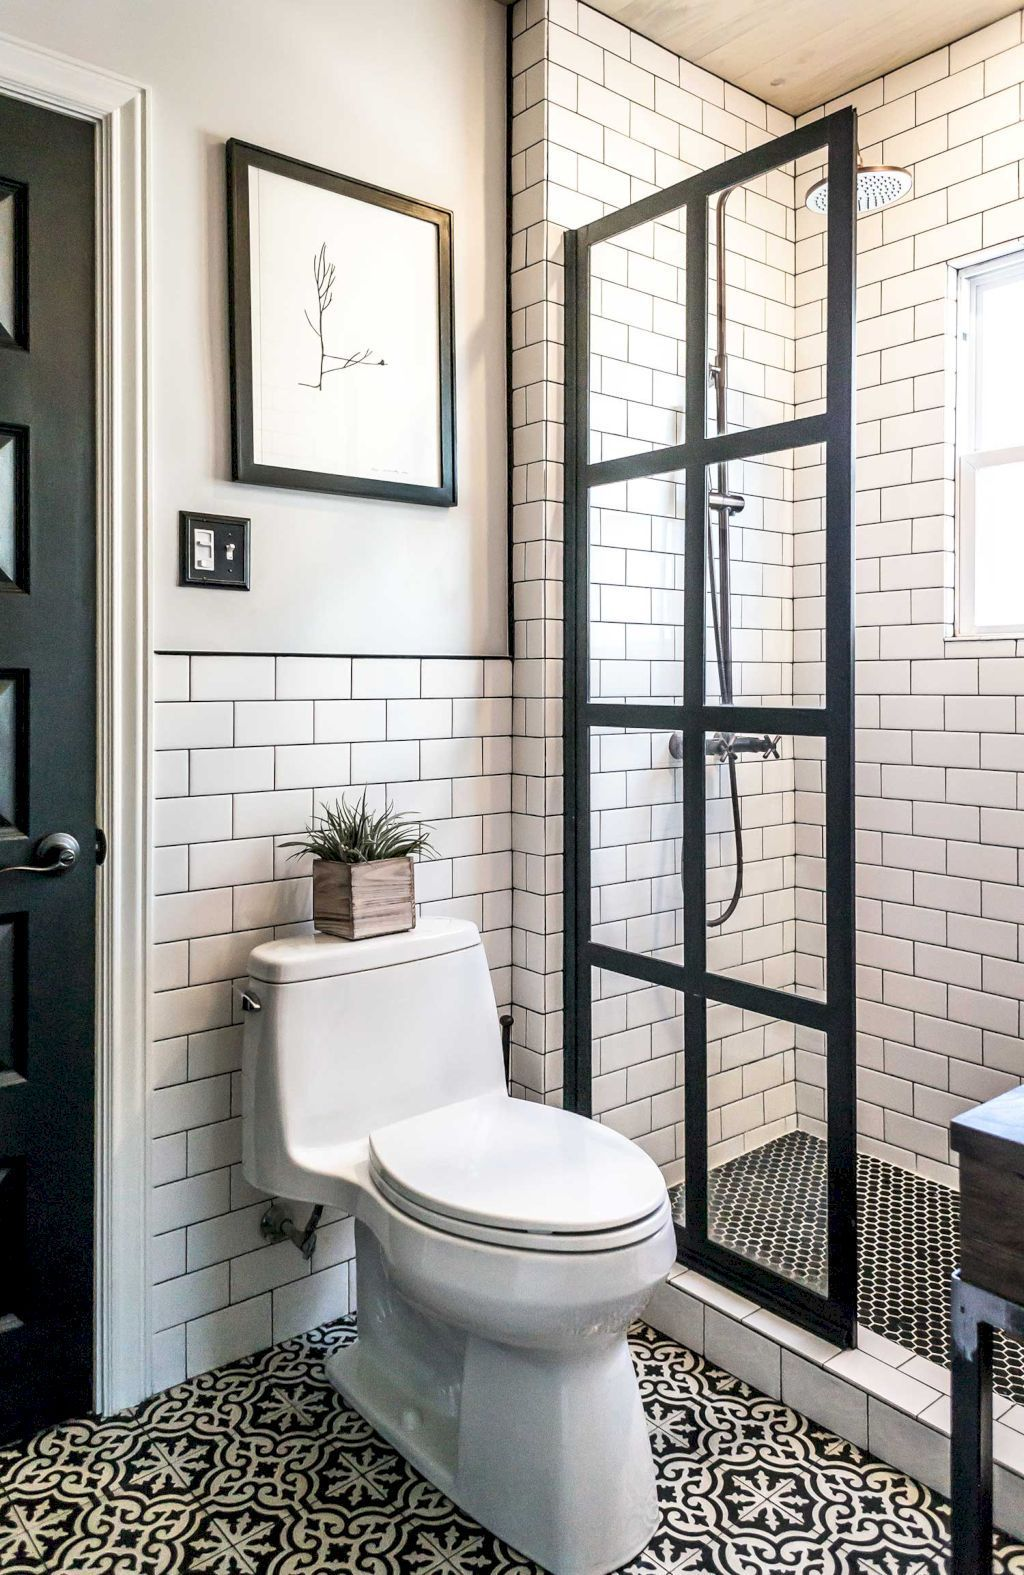 Small Bathroom Remodel Ideas 34  Small Bathroom Bath Ideas And Unique Pictures Of Small Bathroom Makeovers Inspiration Design